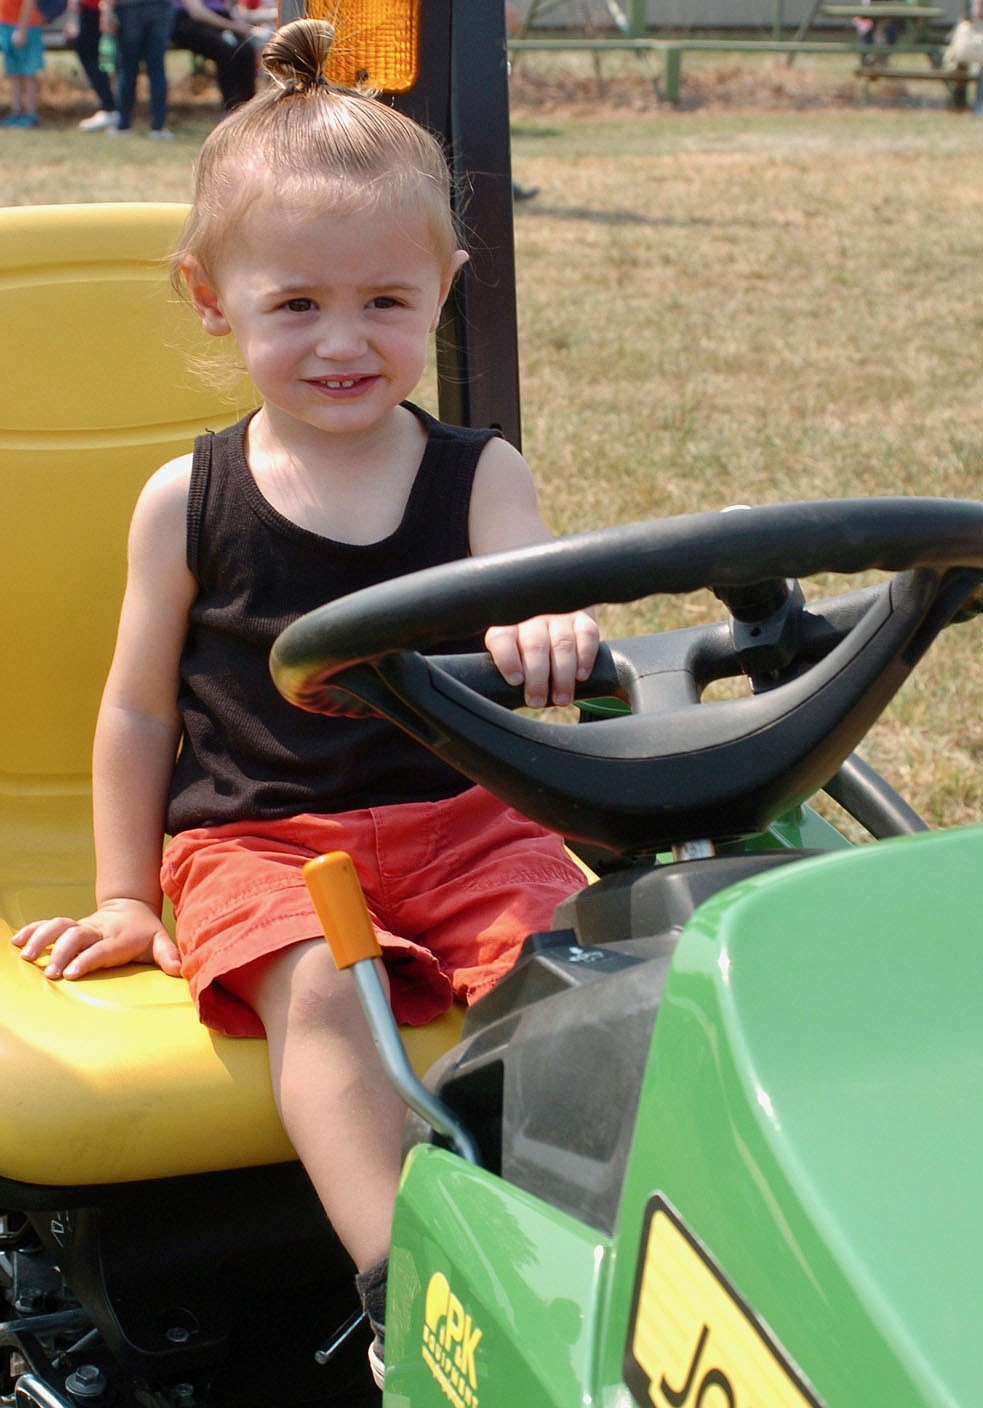 Westside Eagle Observer/RANDY MOLL Emerson Lago, 20 months, sits in the seat of a John Deere mower at the fall show of the Tired Iron of the Ozarks on Saturday, Sept. 11, 2021.